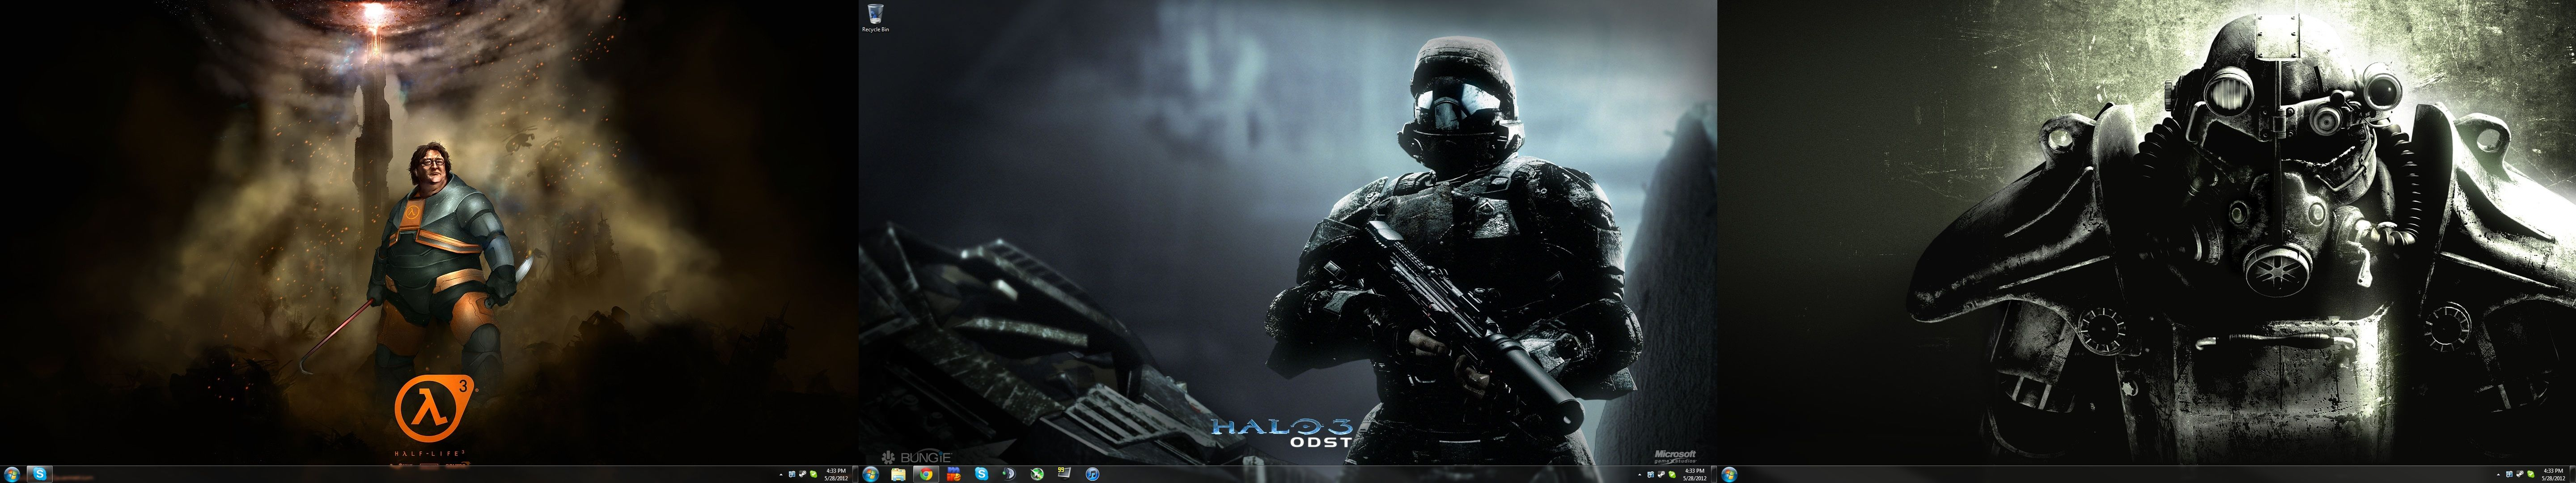 desktopmay28th2012.jpg